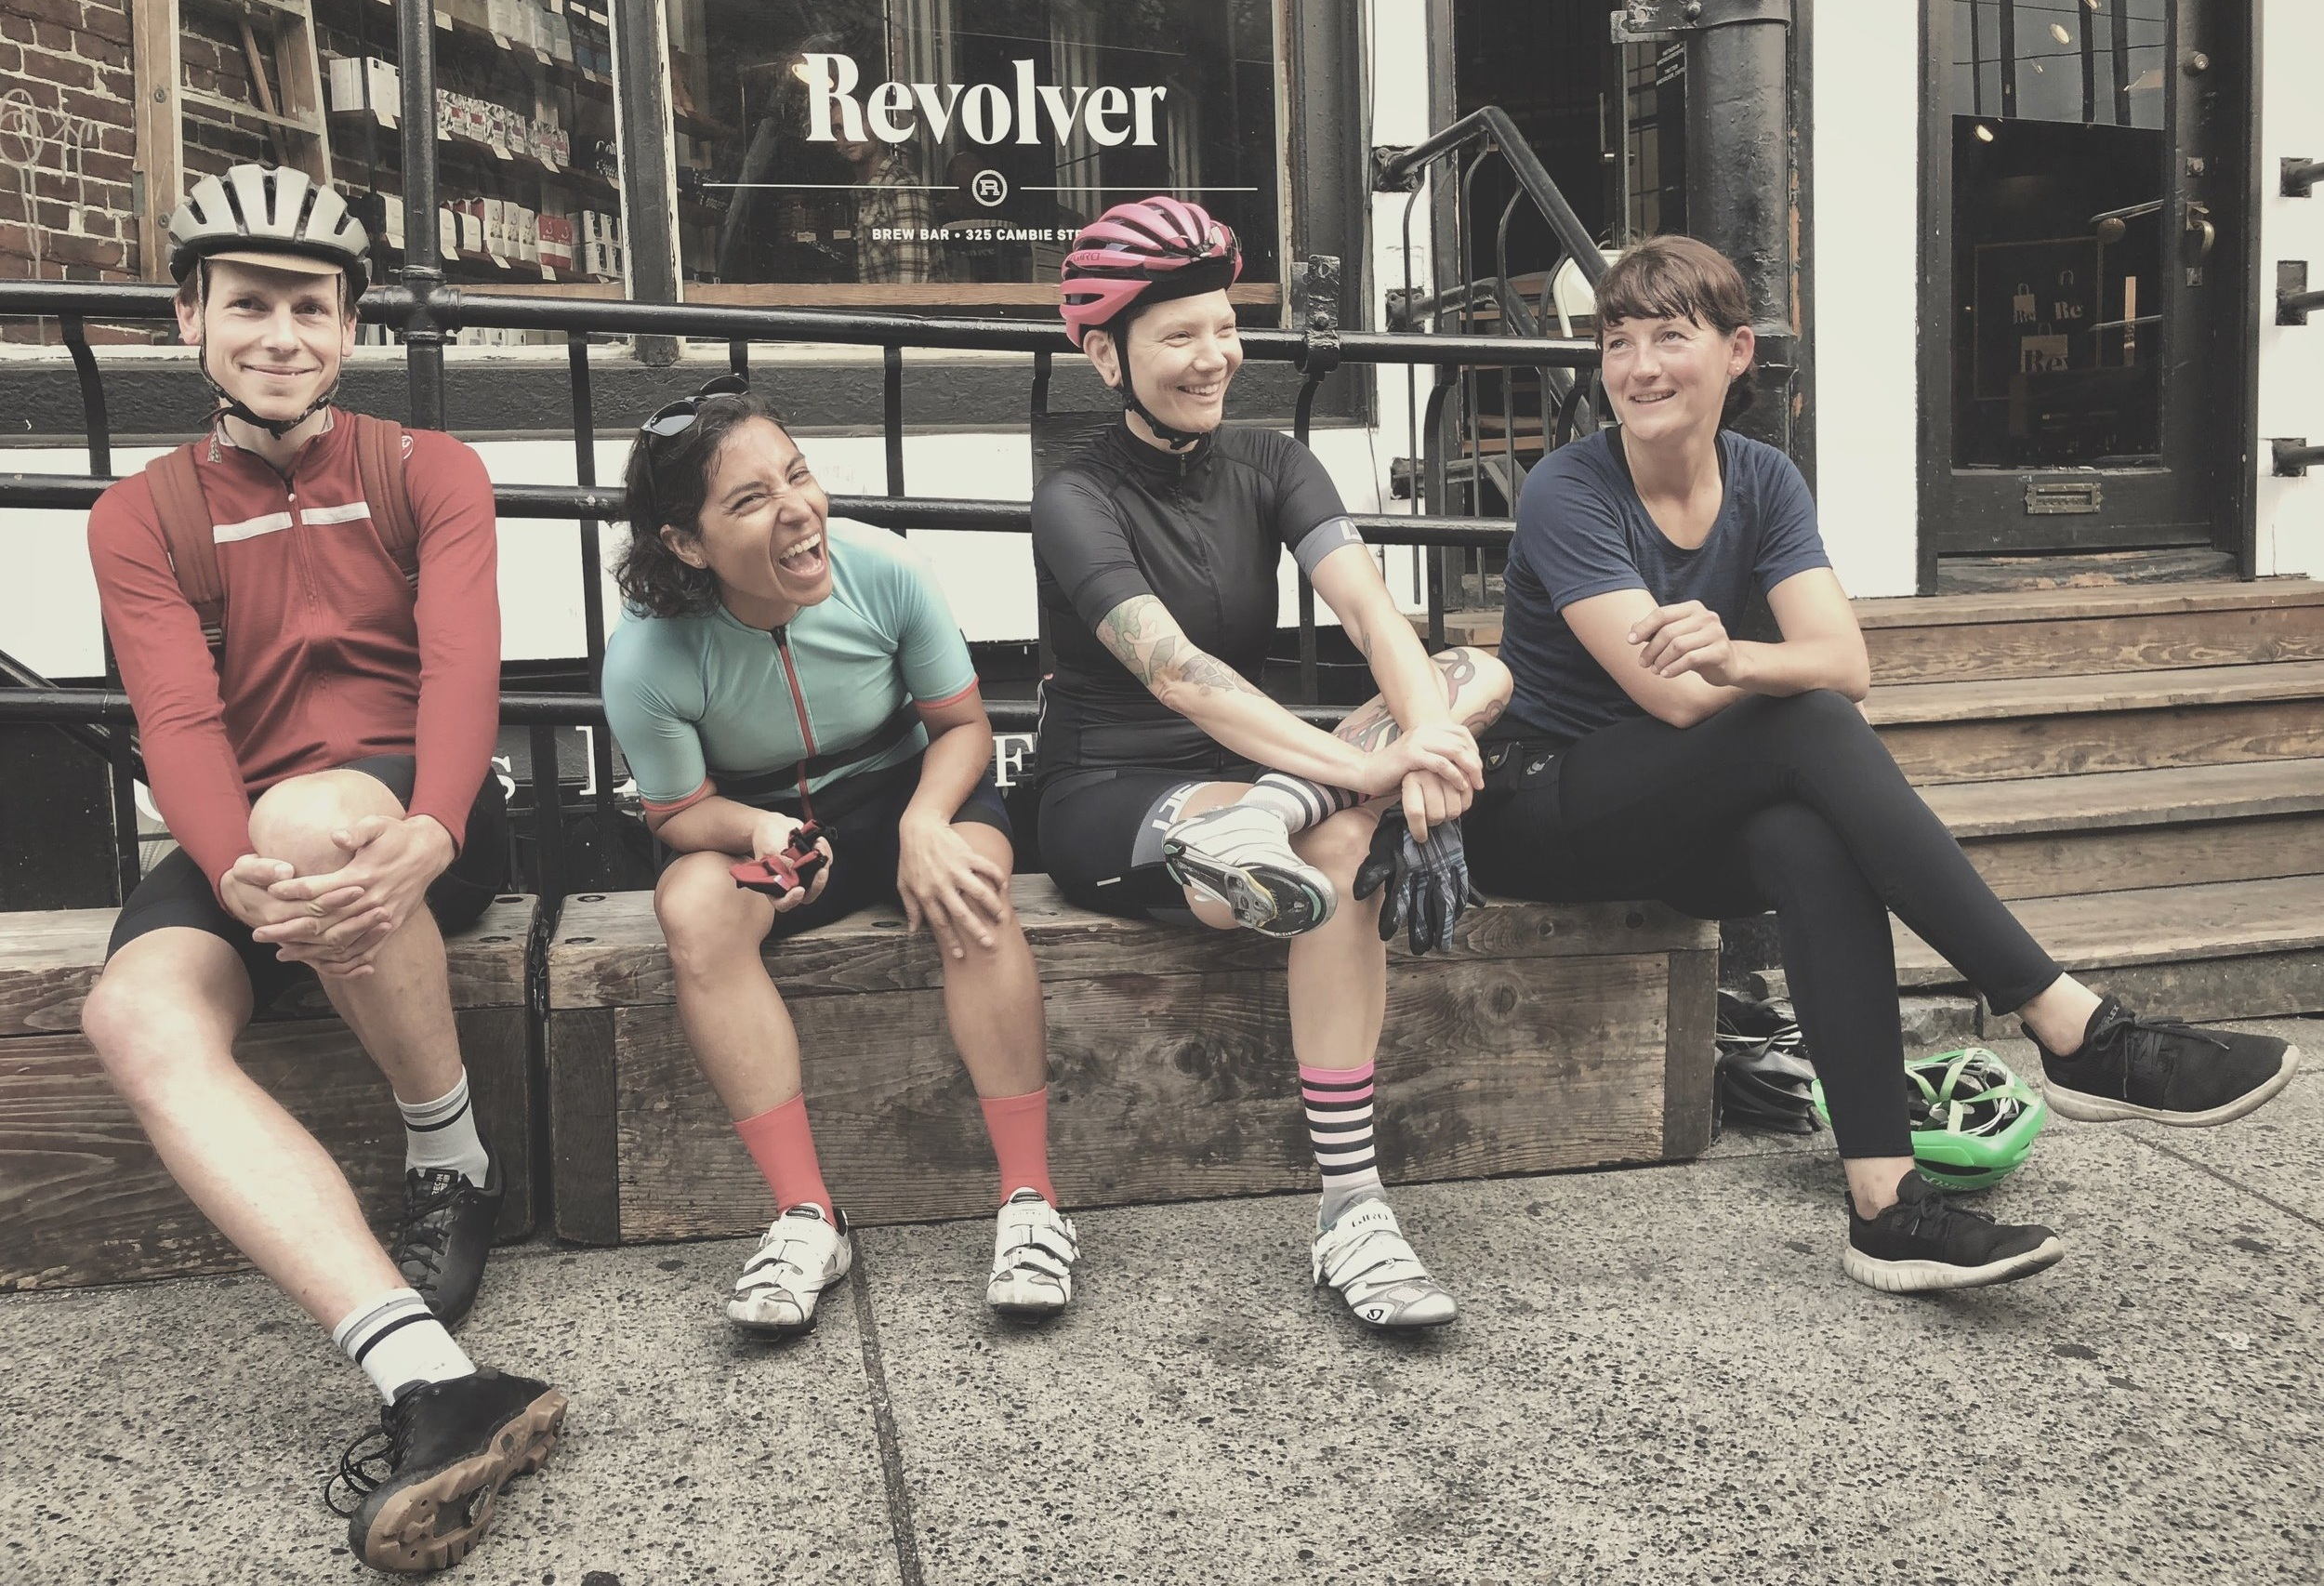 Waiting for coffeecake and cortados at  Revolver Coffee  in Vancouver;  Geordan  /  Monica  /  Jill  /  Nora  / PHOTO:  @ferbyshellbourne